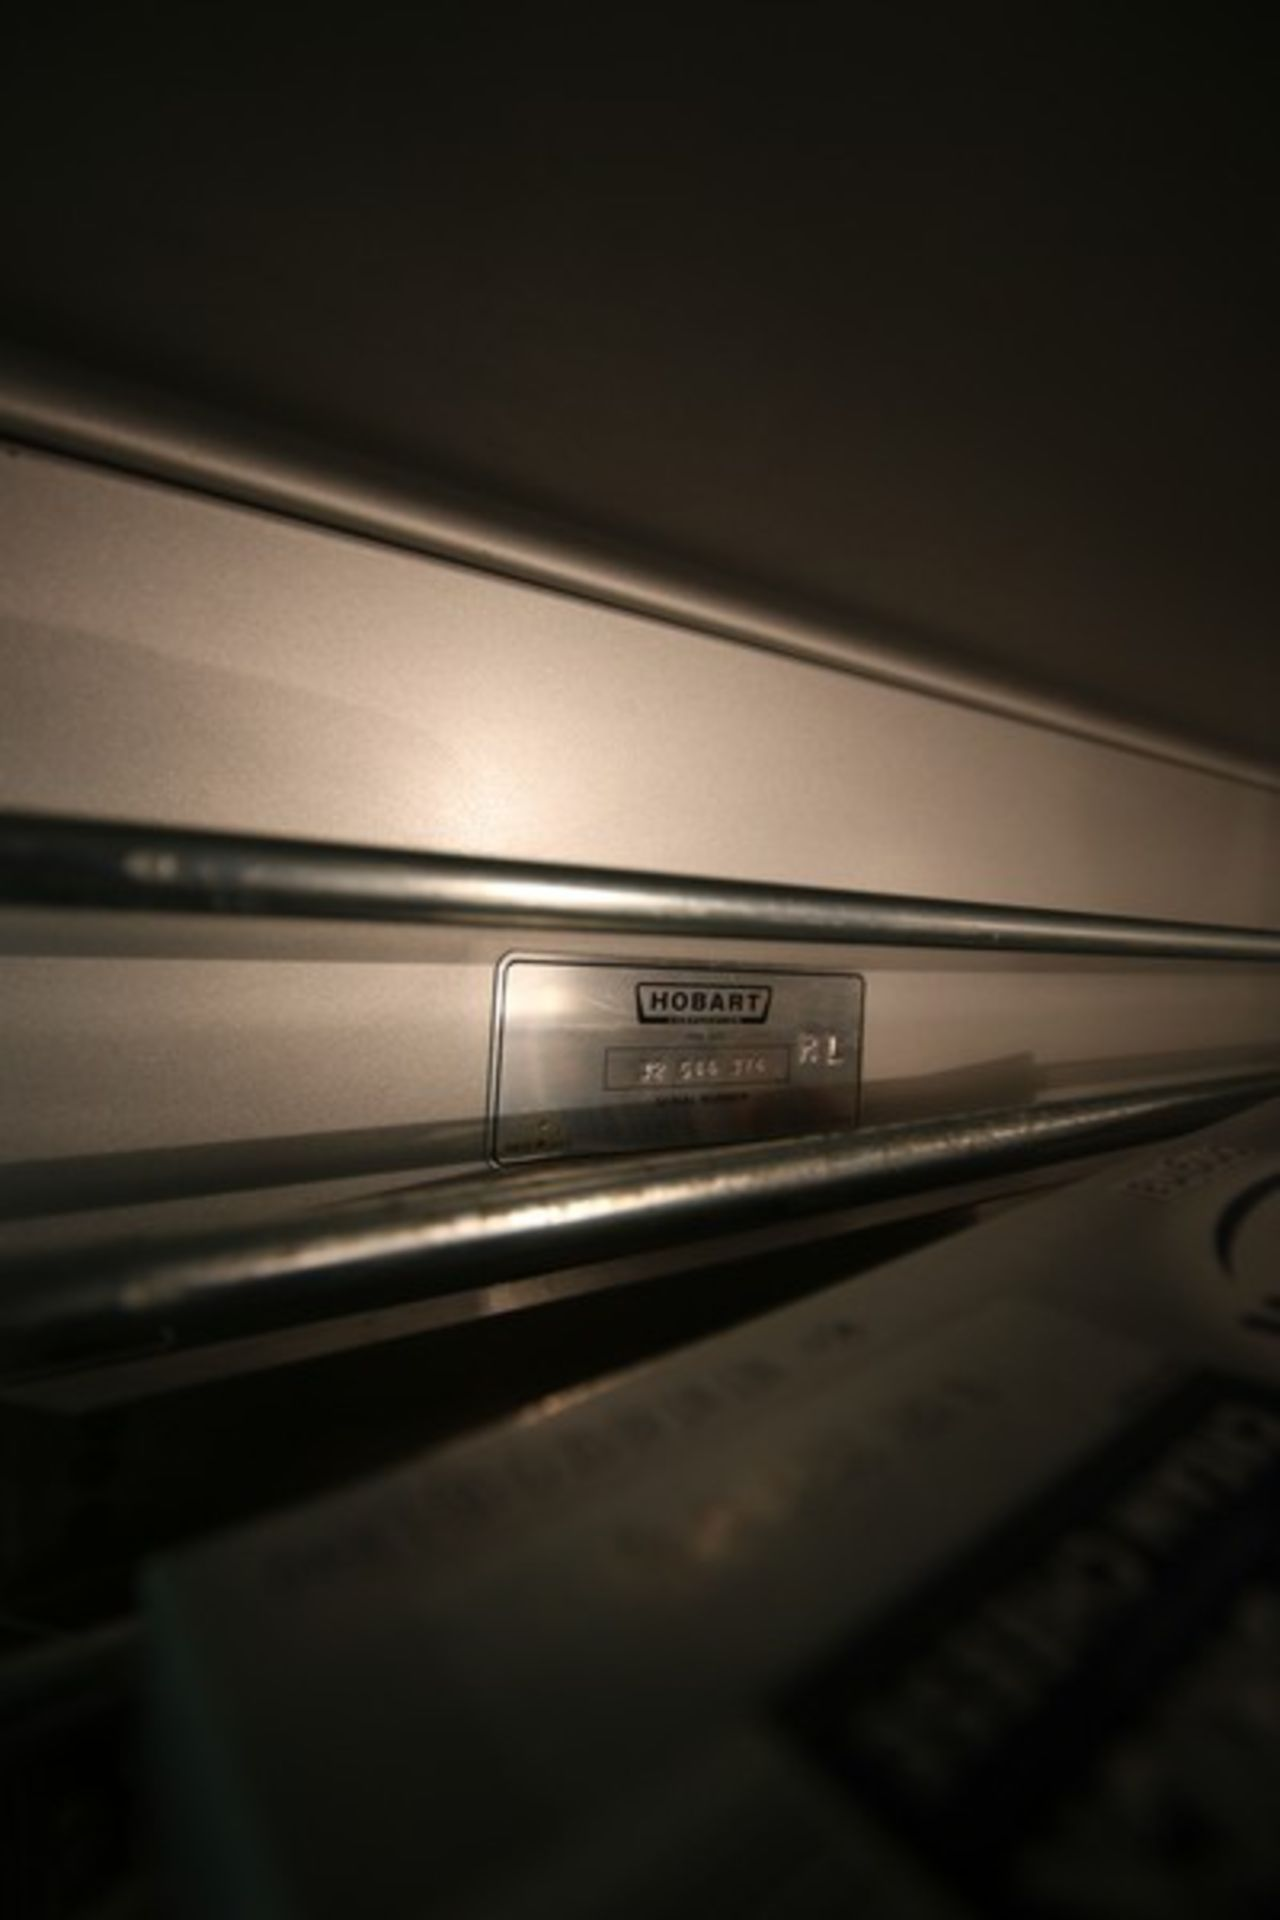 """Hobart 3-Compartment S/S Refrigerator, M/N OFR3, S/N 32 544 374, Overall Dims.: Aprox. 83"""" L x 33"""" W - Image 3 of 6"""